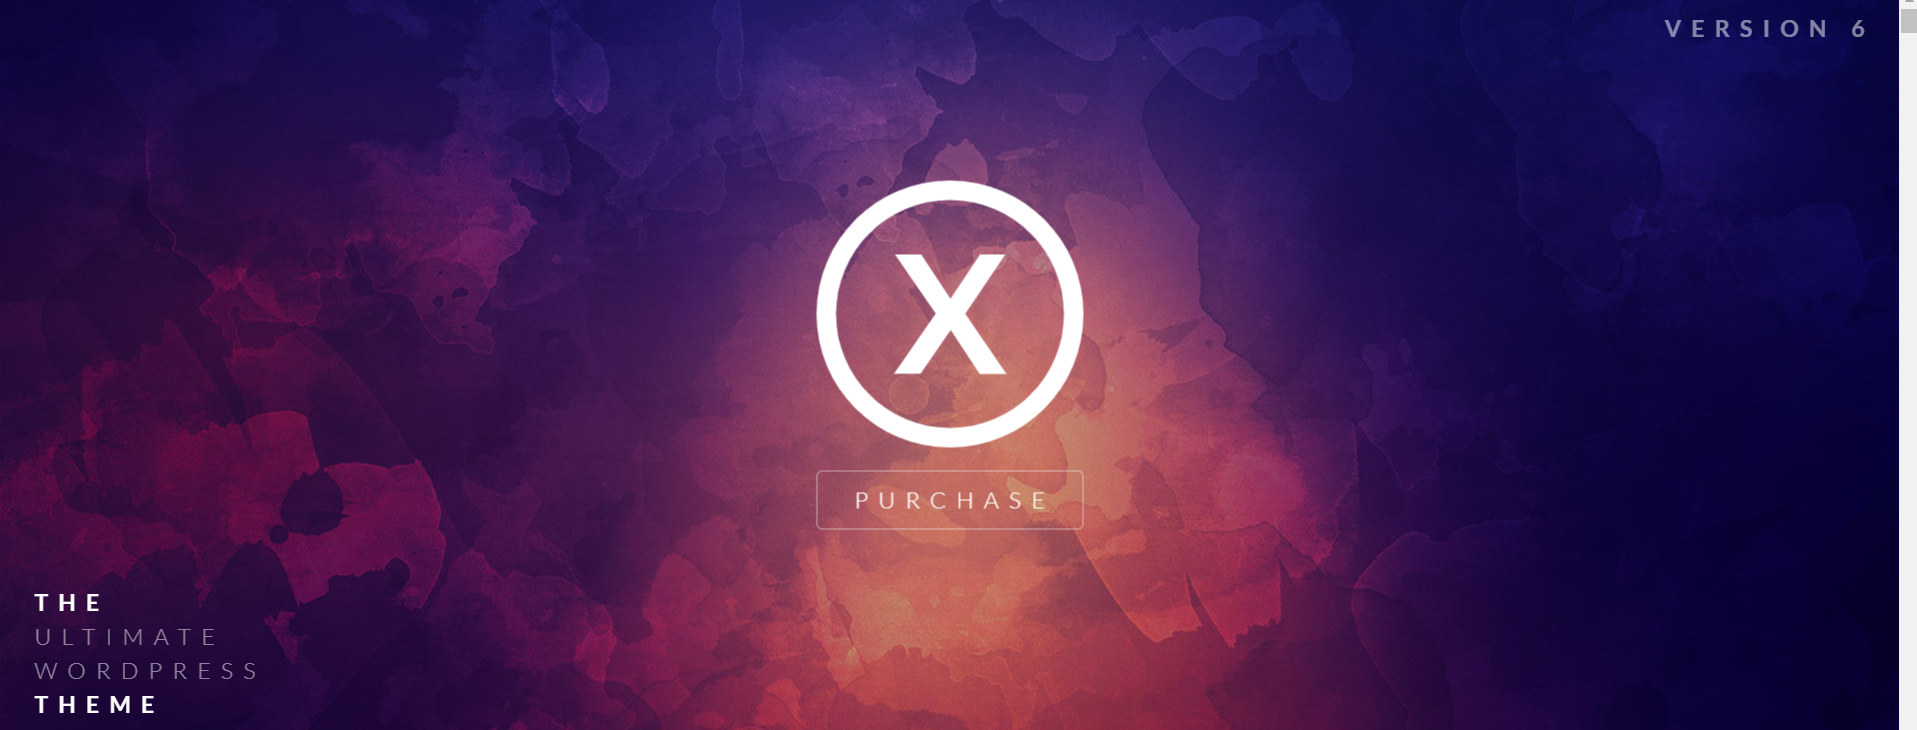 Circle With X   13 Best WordPress Themes For All Types Of Blogs & Websites